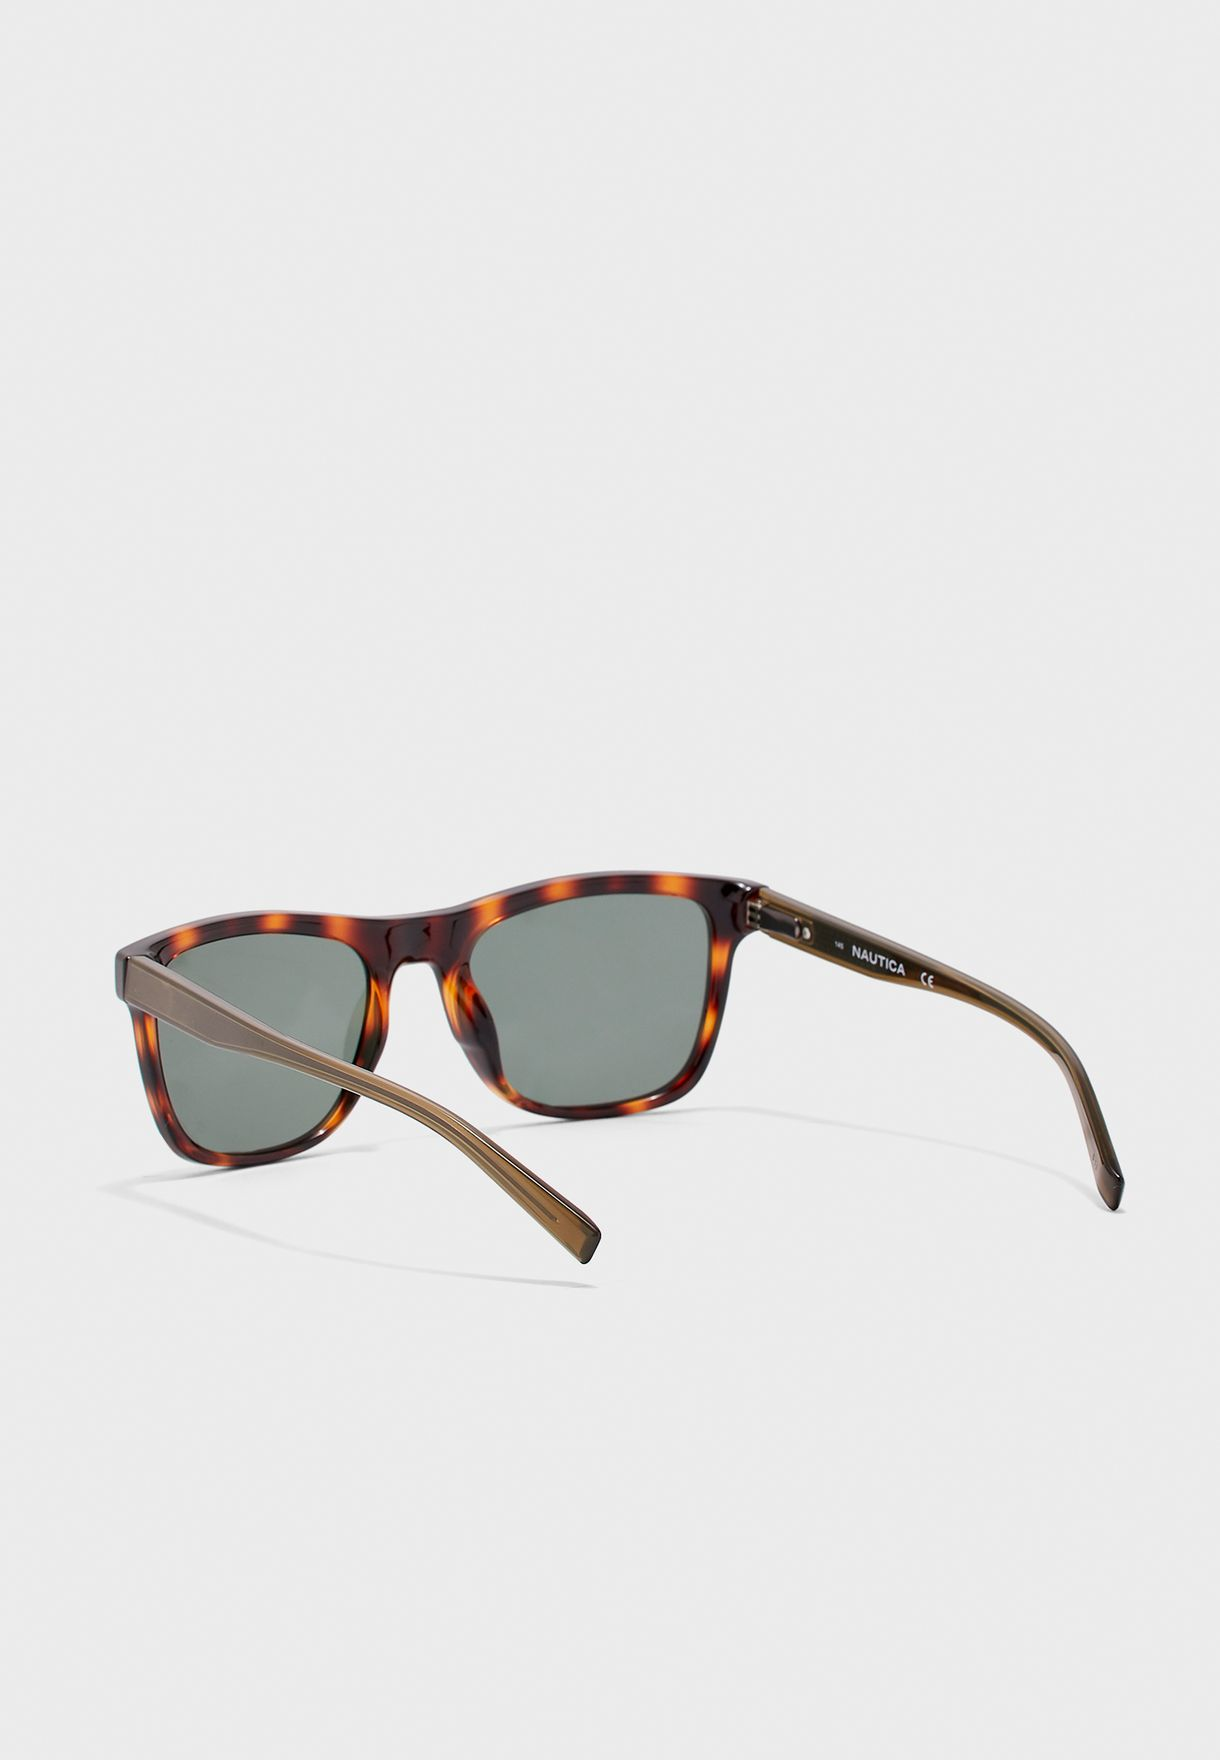 Square Wayfarers Sunglasses